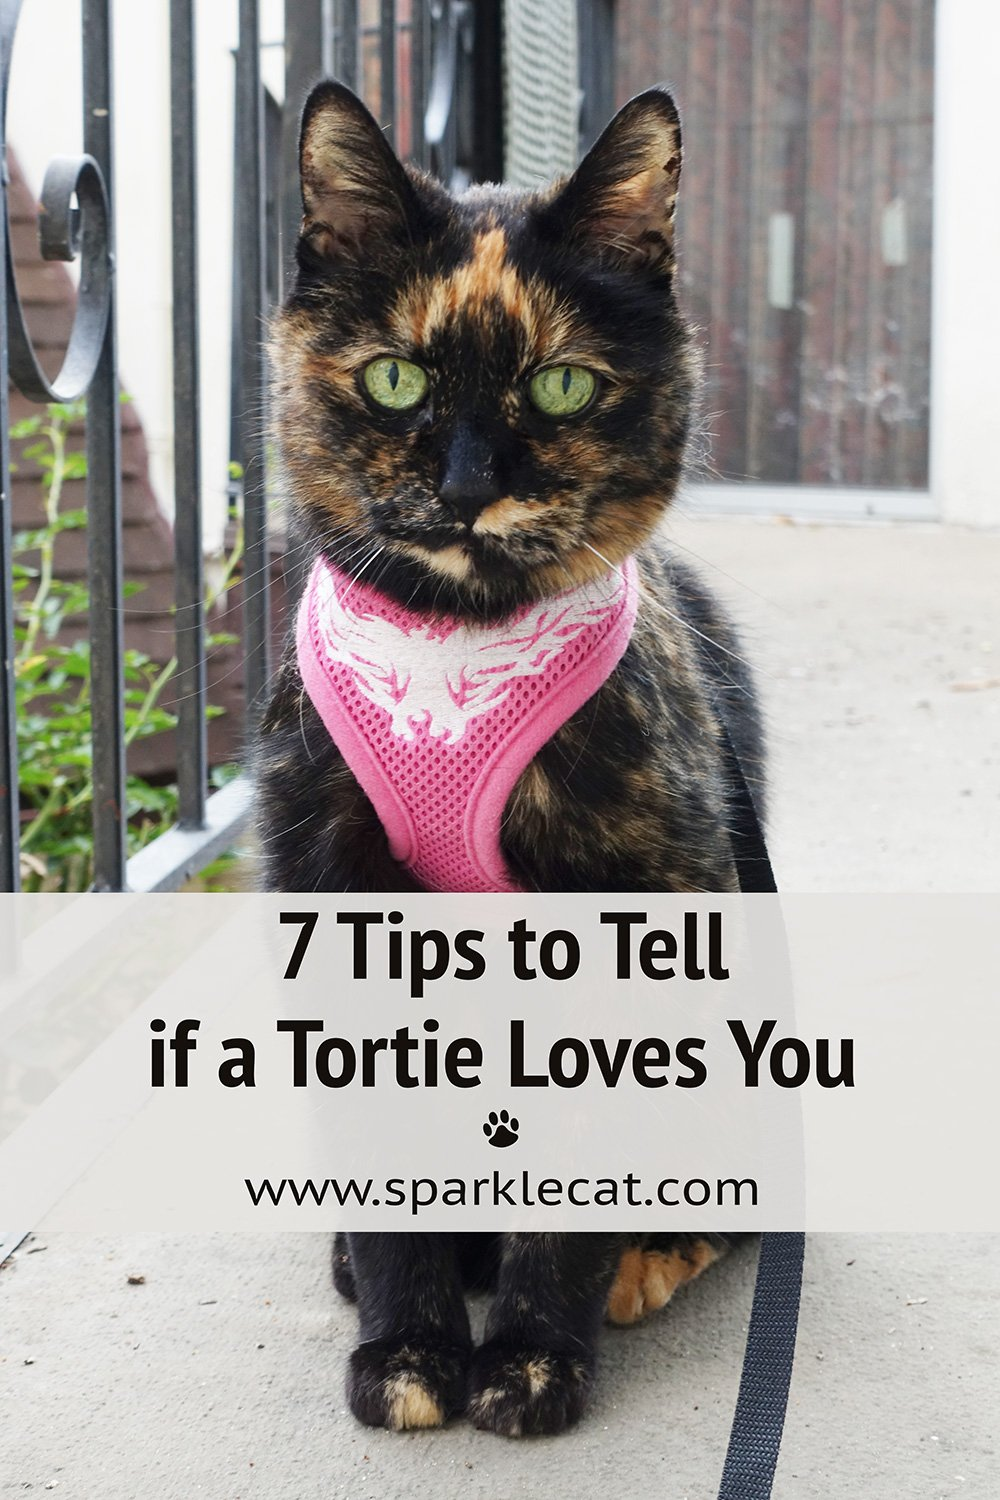 How to Tell if a Tortie Loves You - 7 Tips